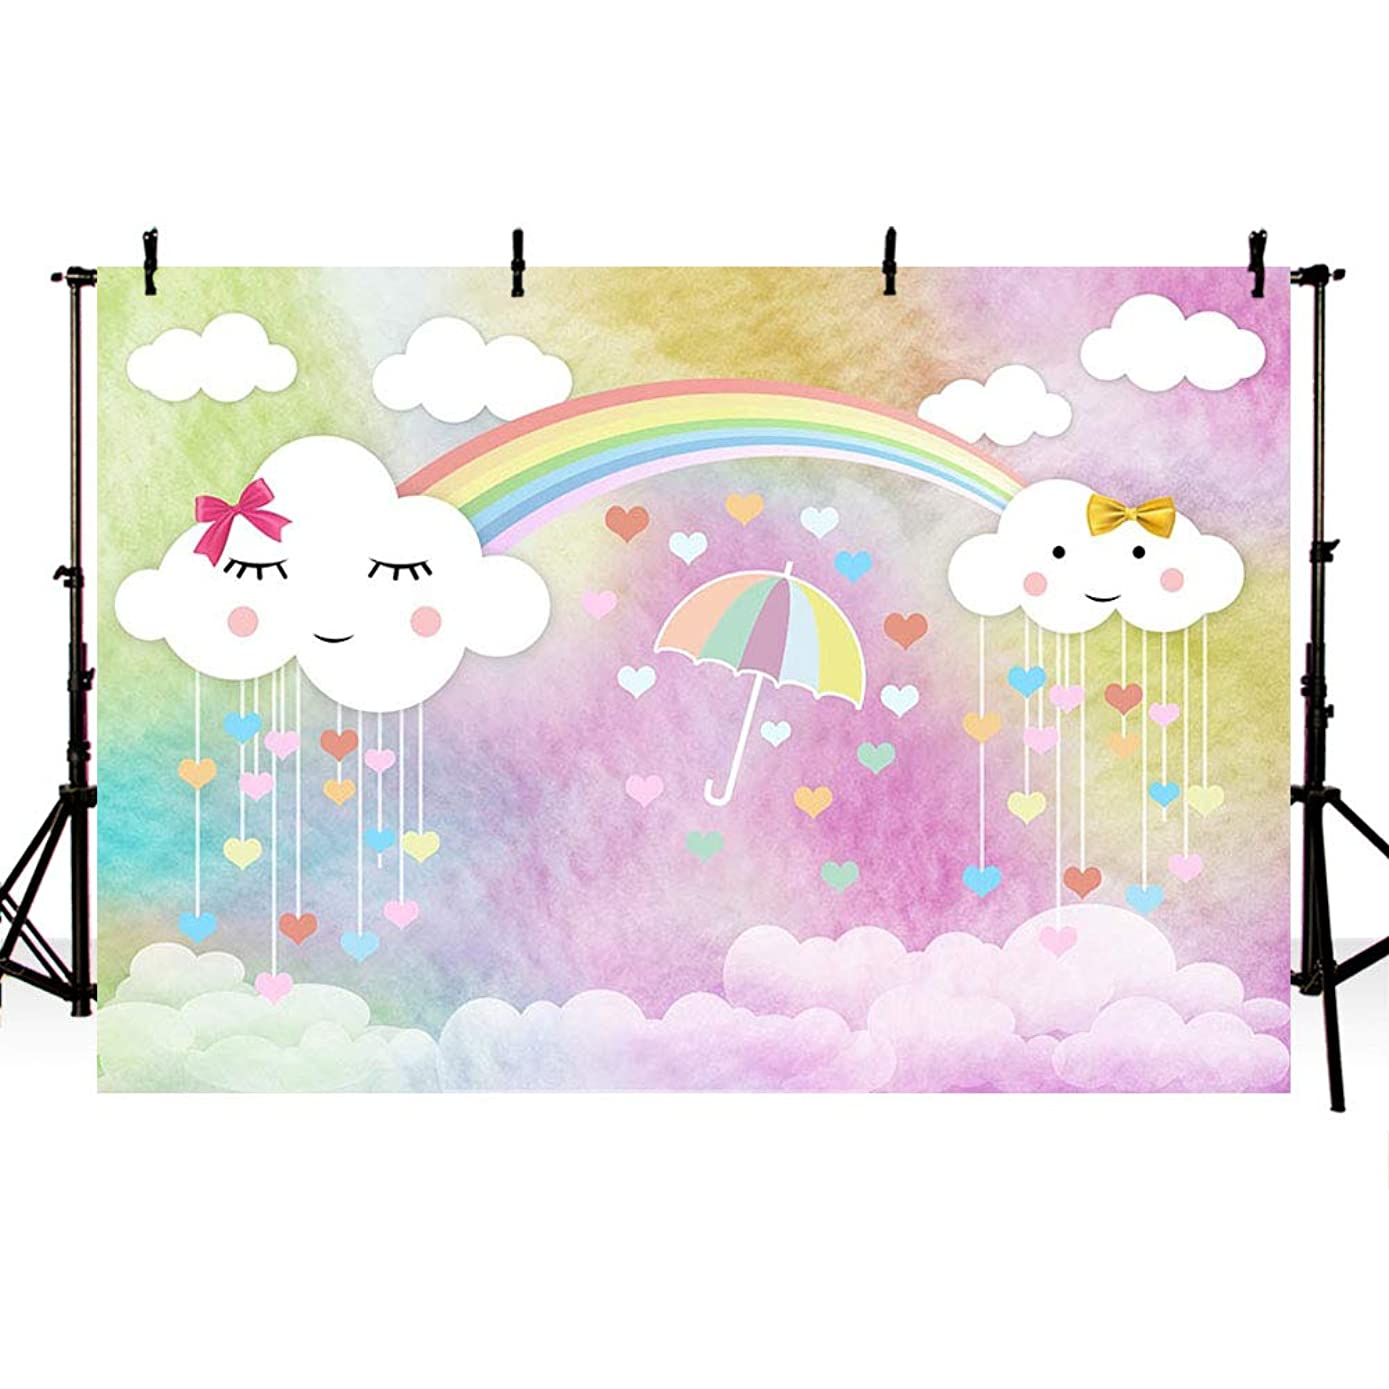 MEHOFOTO Cute White Cloud Colorful Photo Studio Backdrop Props Princess Birthday Girl Baby Shower Party Decorations Rainbow Umbrella Photography Background Banner for Cake Table Supplies 7x5ft